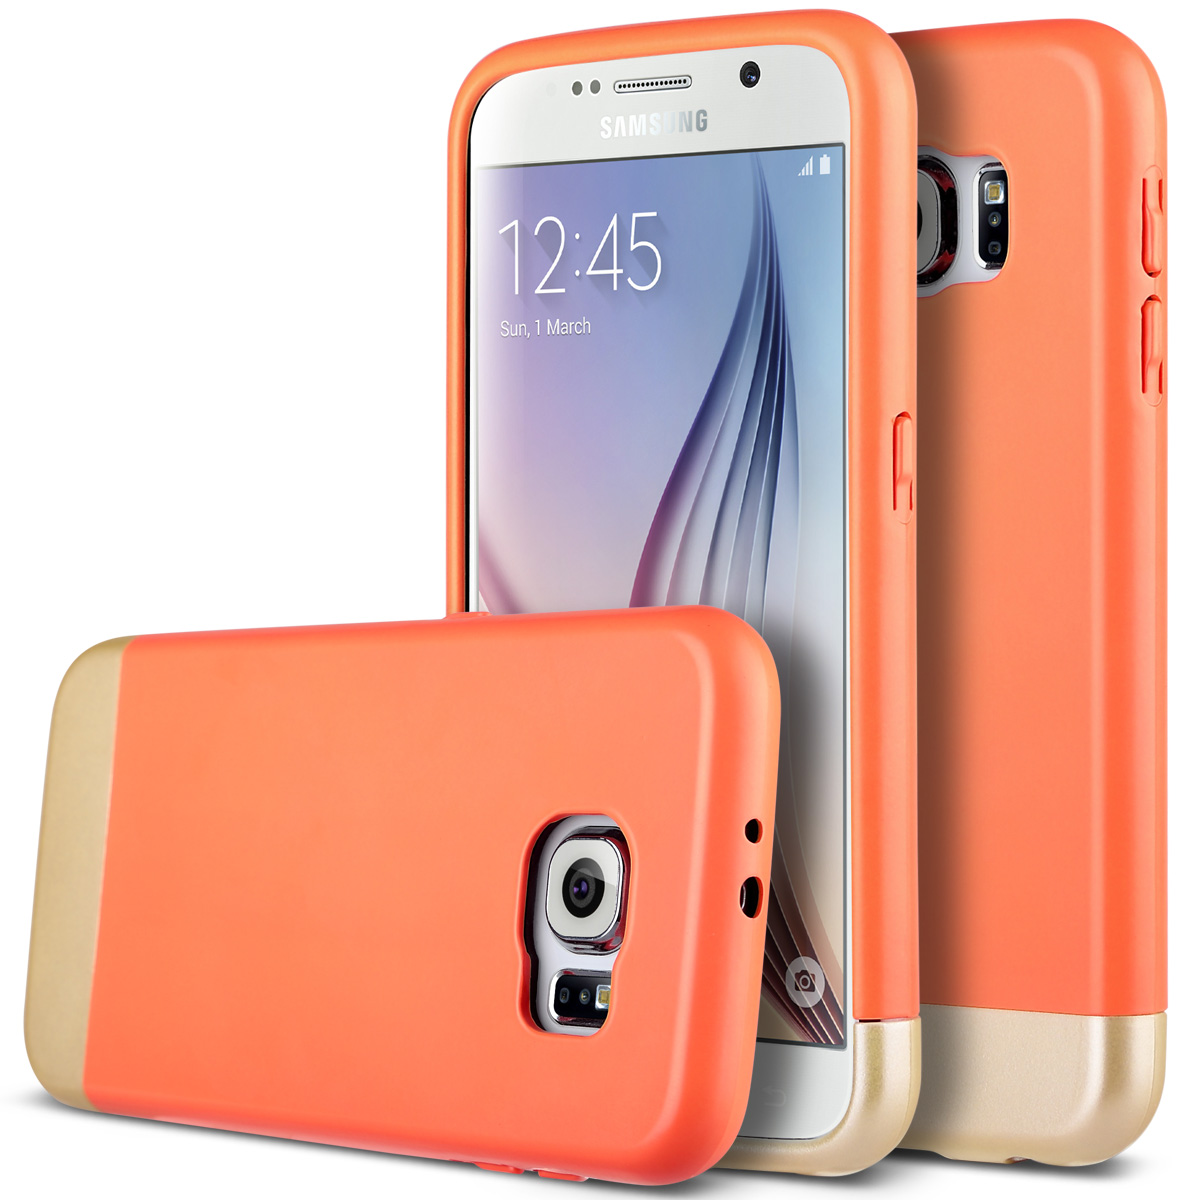 ULAK Galaxy S6 Slim Case, Hybrid Slider Style Hard Protective Case for Samsung Galaxy S6 Vibrant Trendy Color Cover Soft TPU Interior (Orange+Gold)